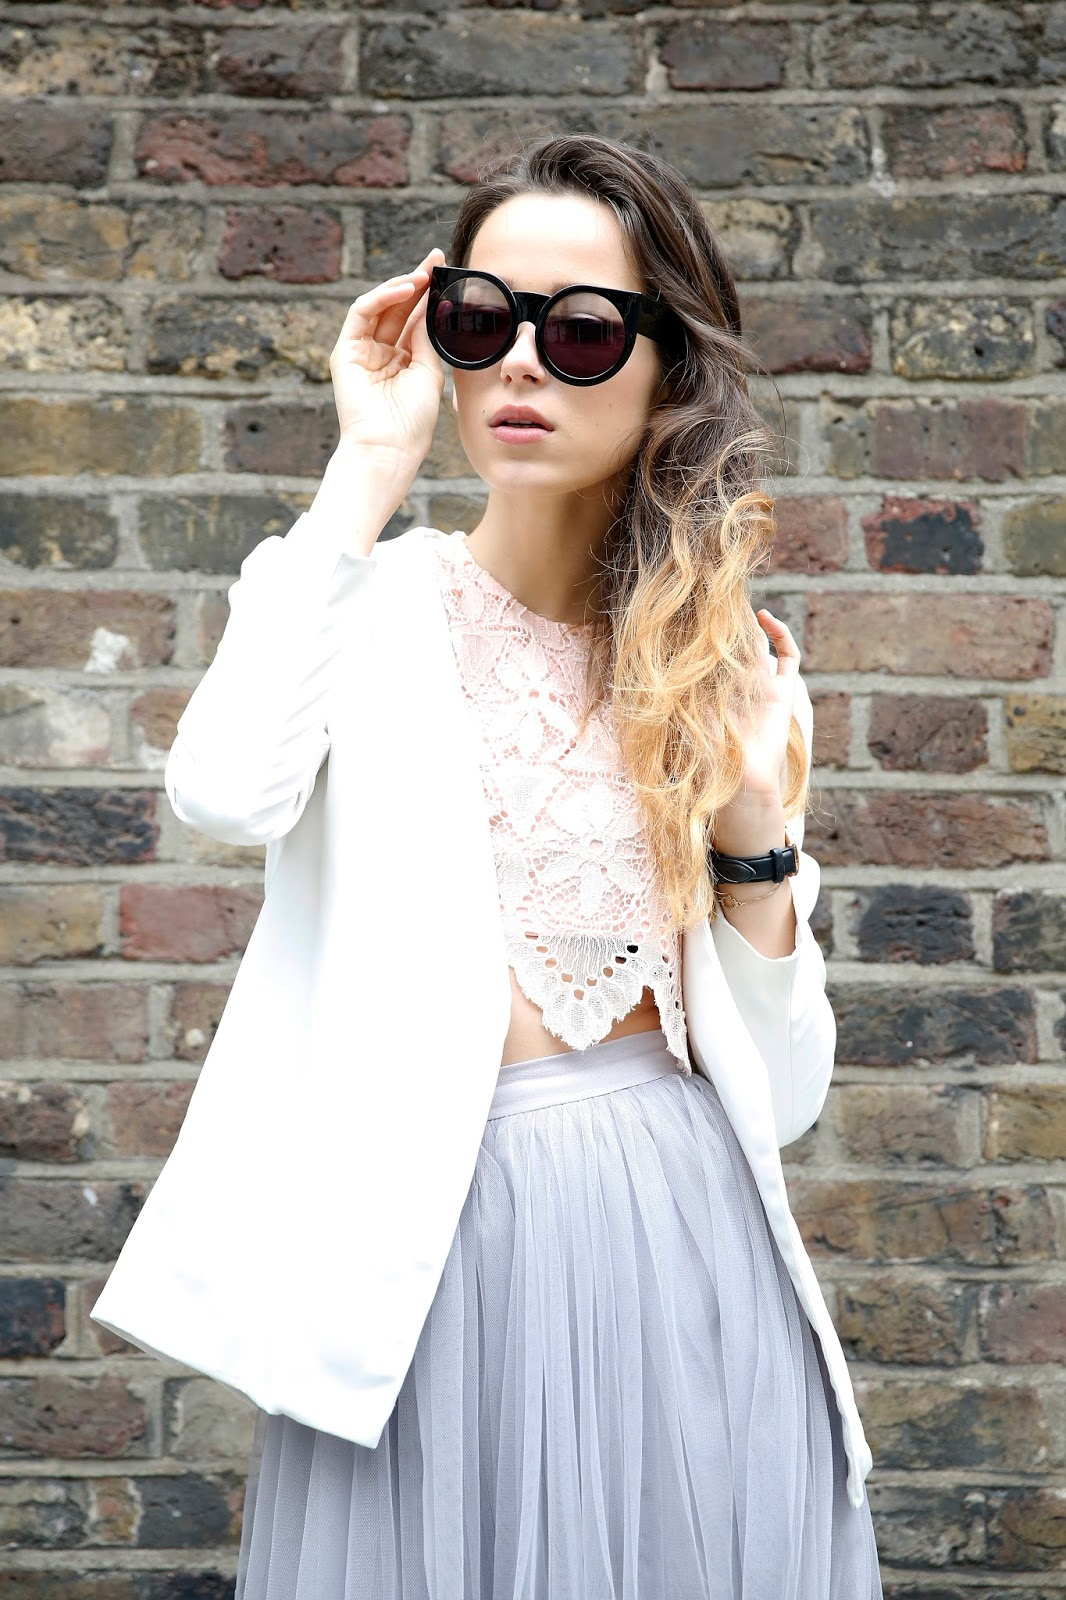 Victoria Metaxas, London Fashion Blogger Photographer